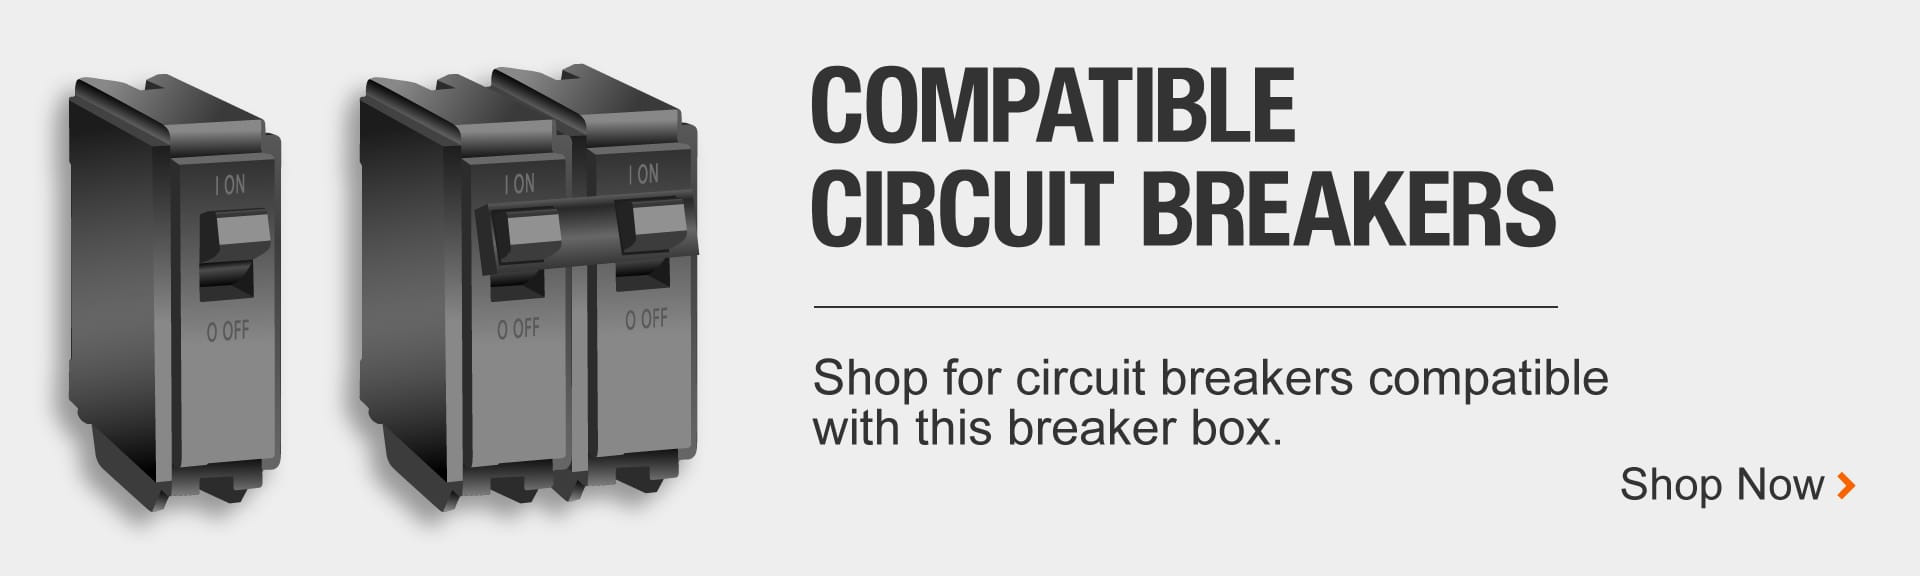 hight resolution of shop for compatible circuit breakers